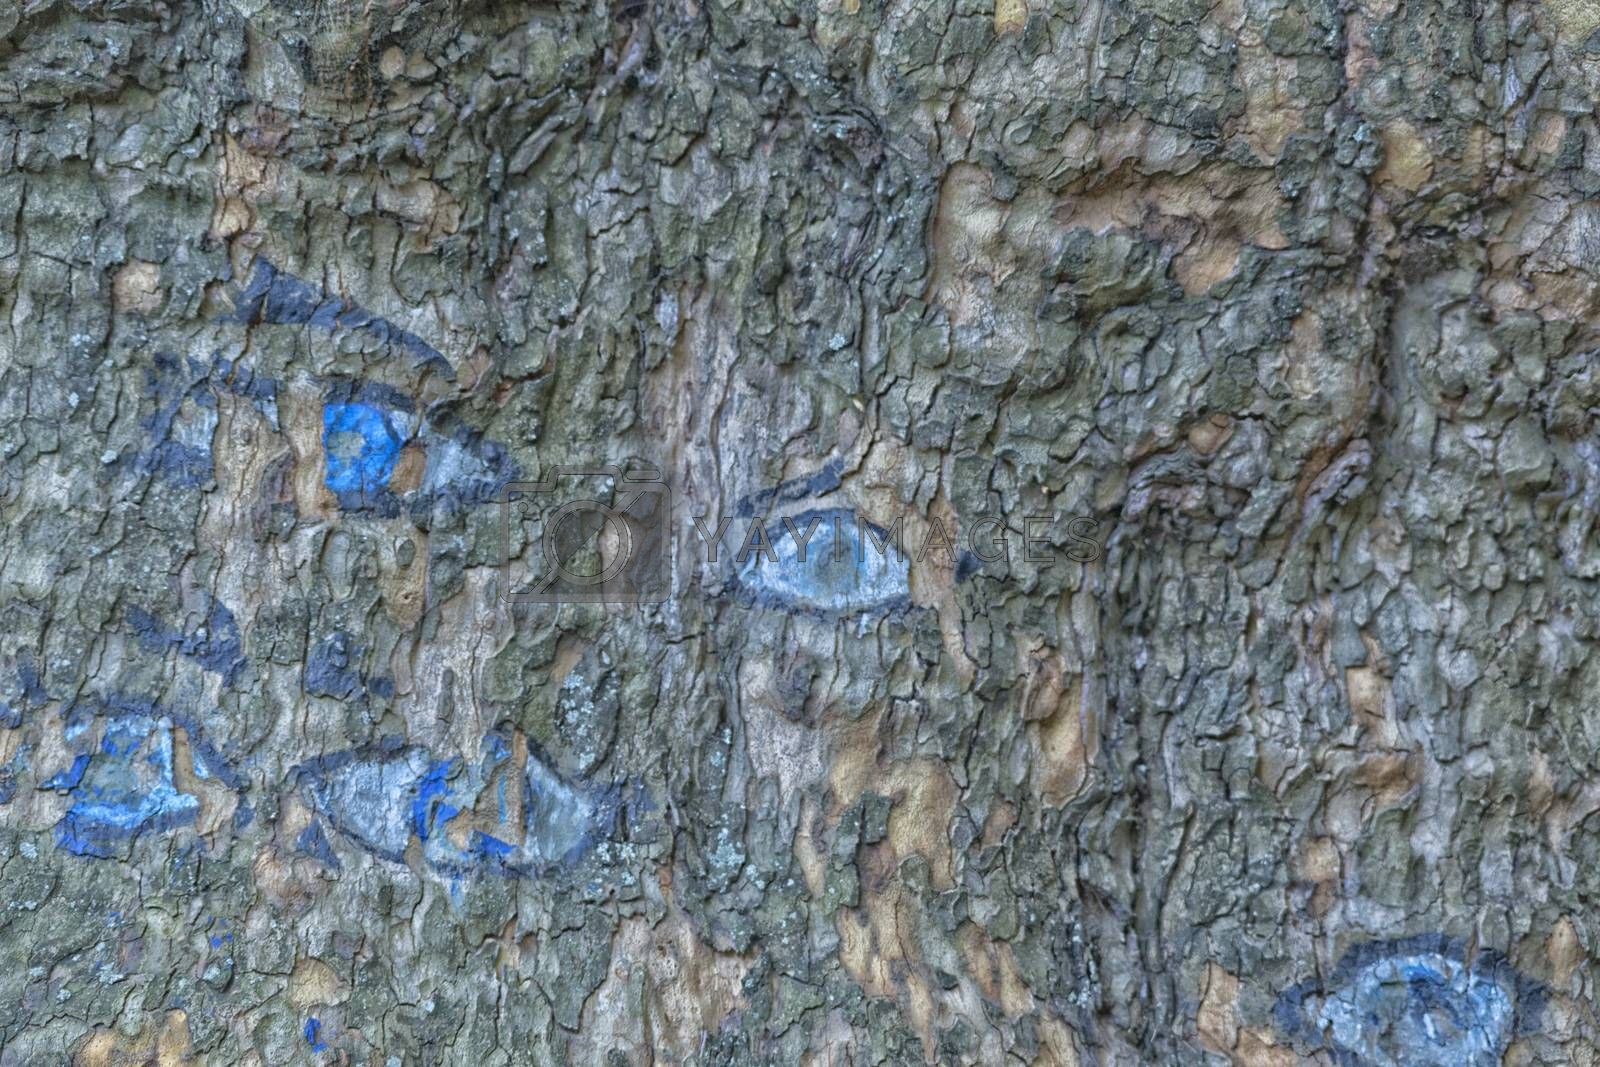 Blue eyes drawn on the bark of a tree